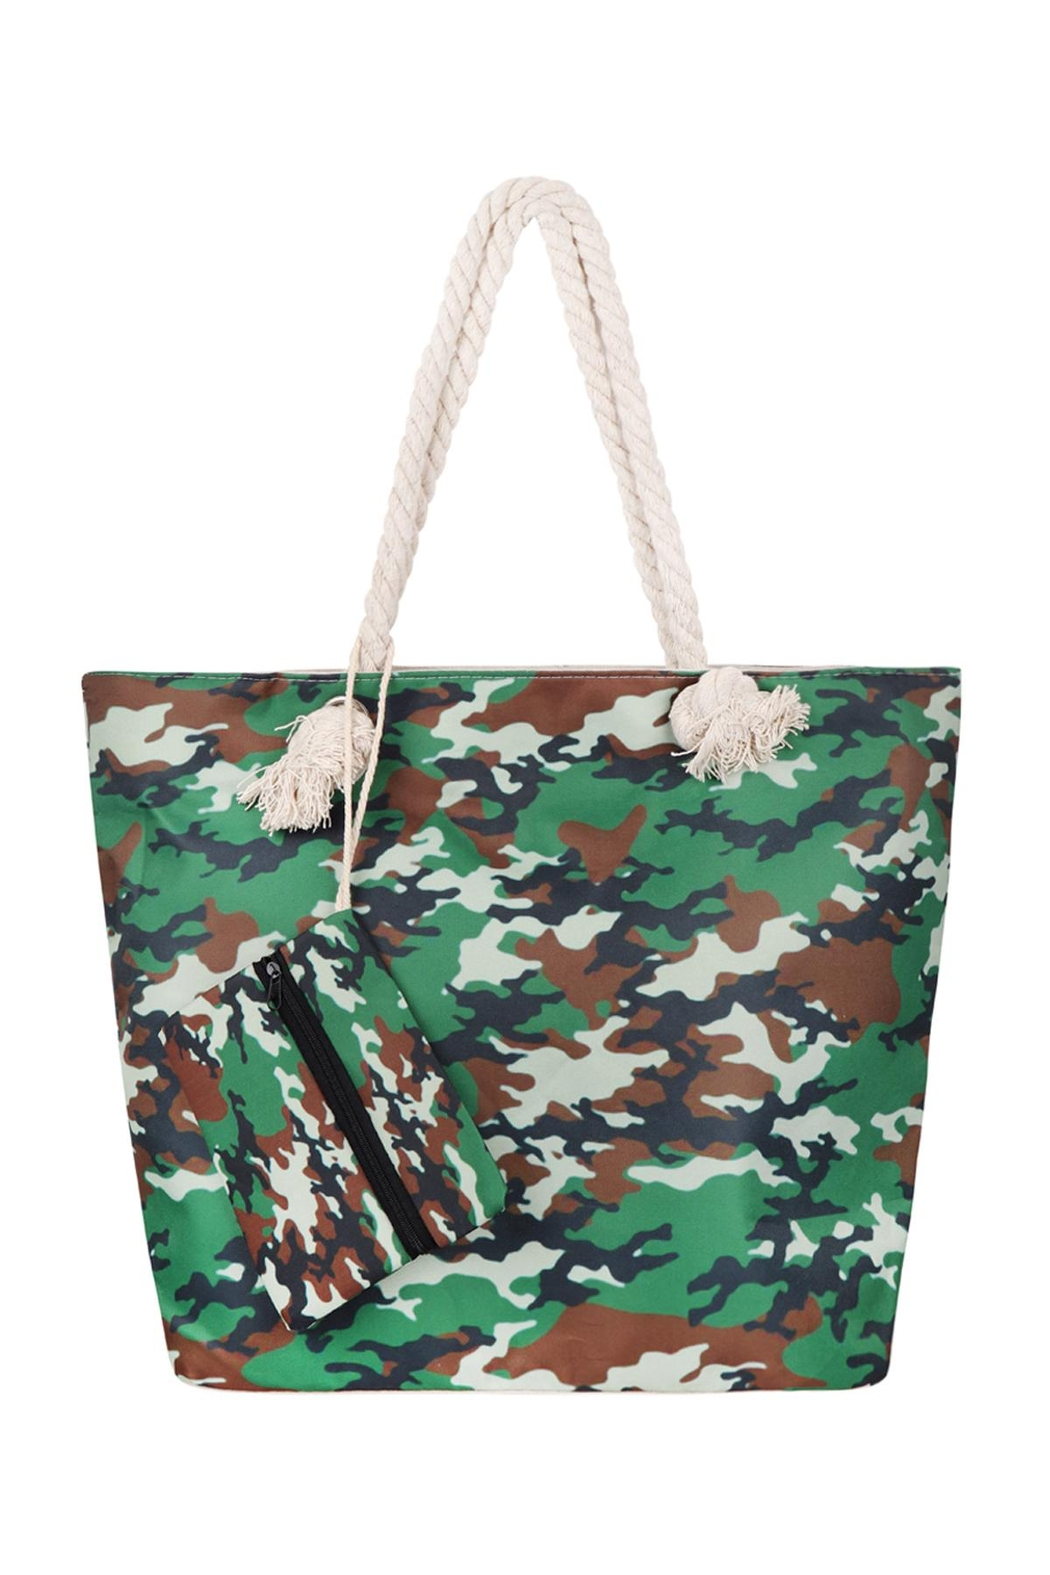 Riah Fashion Fashionable-Camouflage-Digital-Printed-Tote-Bag-W/-Matching-Wallet - Main Image